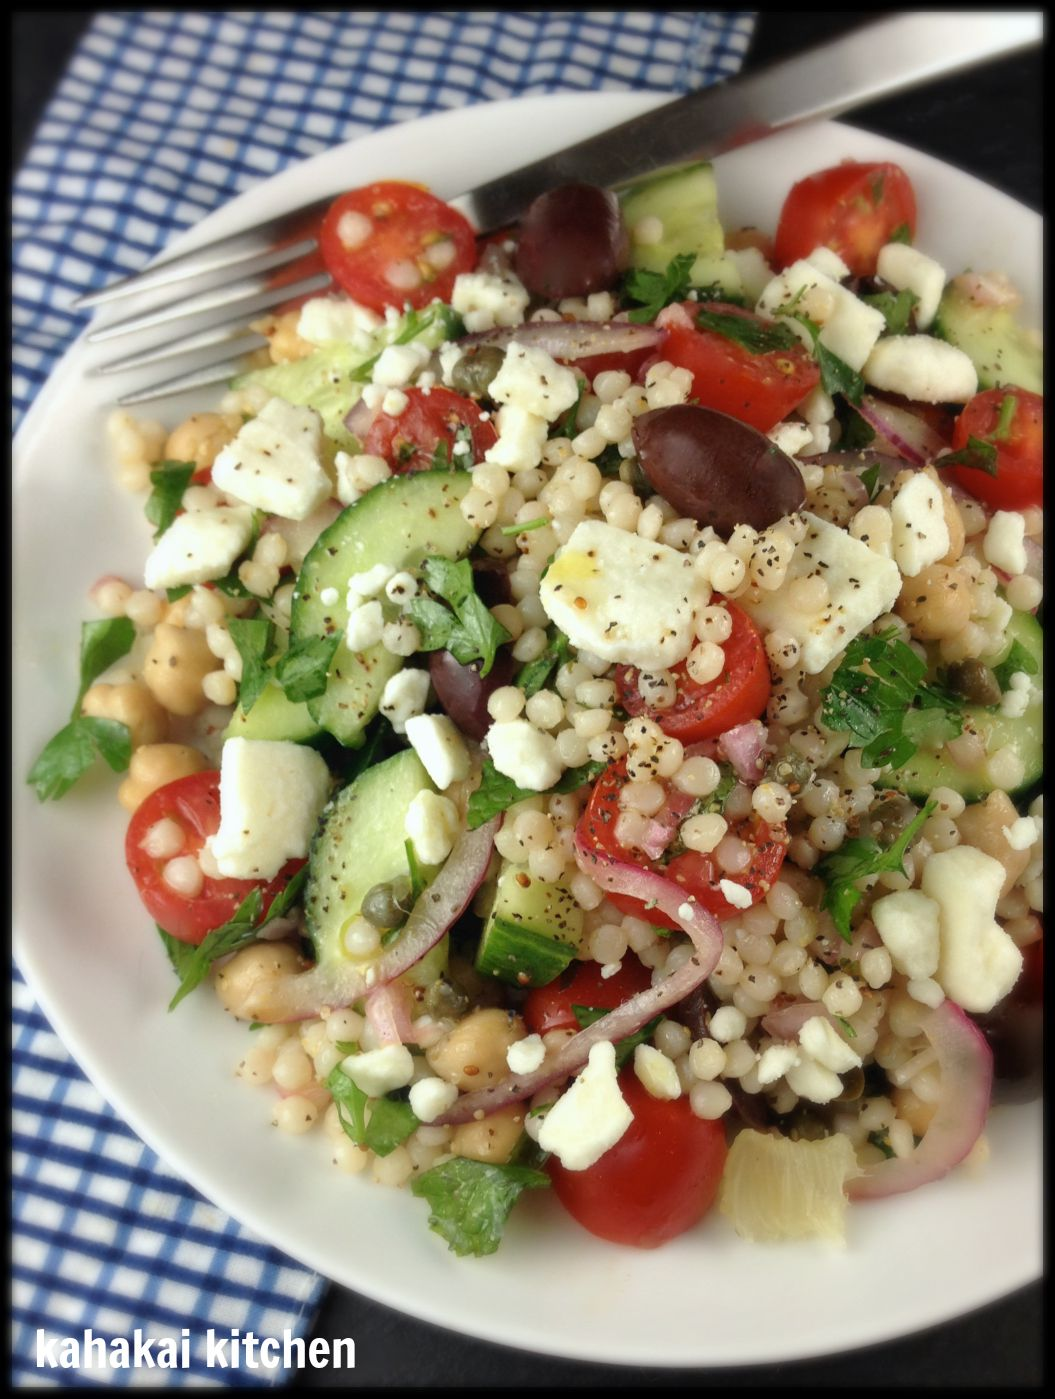 ... with a Greek(ish) Pearl Couscous Salad with Lemon-Caper Dressing